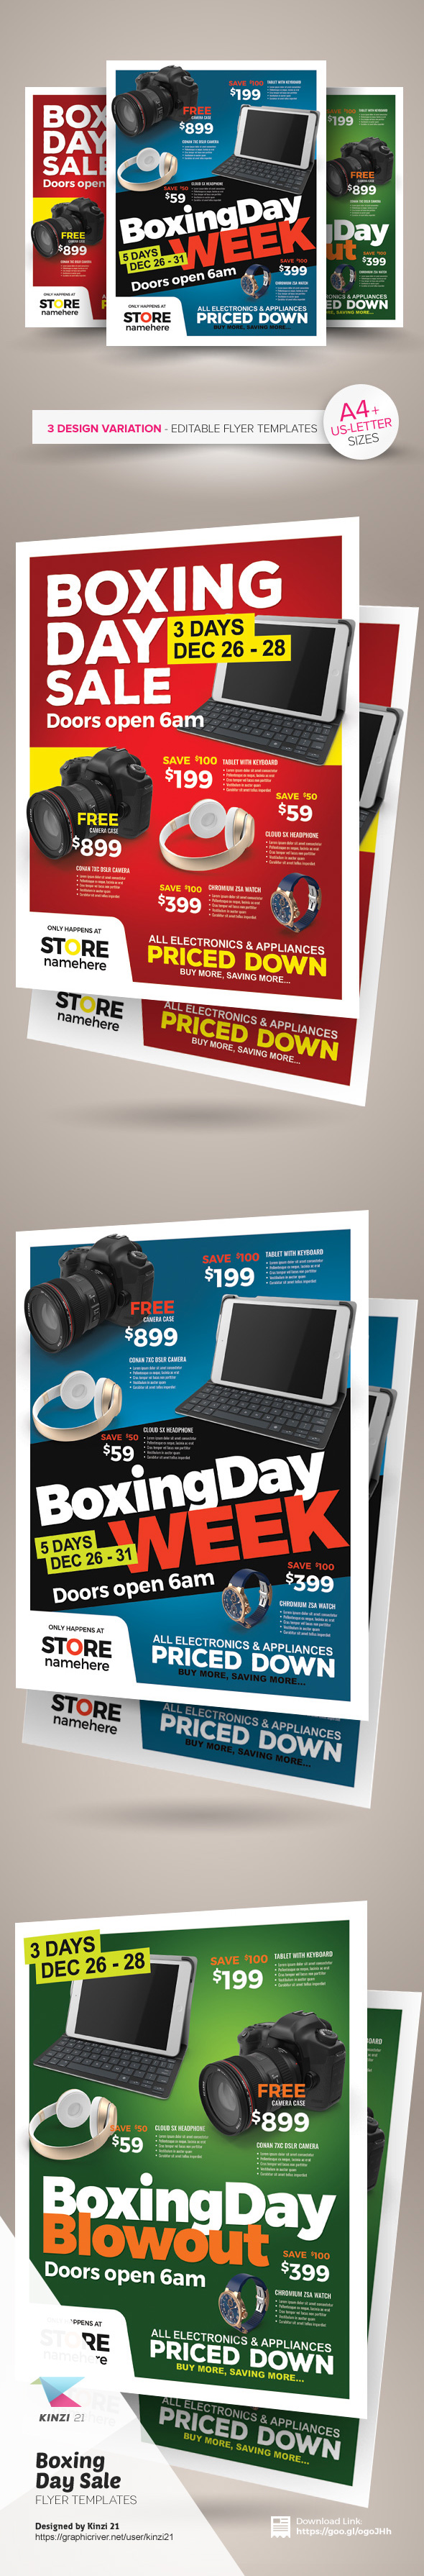 boxing day flyer templates on behance boxing day flyer templates are fully editable design templates created for on graphic river more info of the templates and how to get the